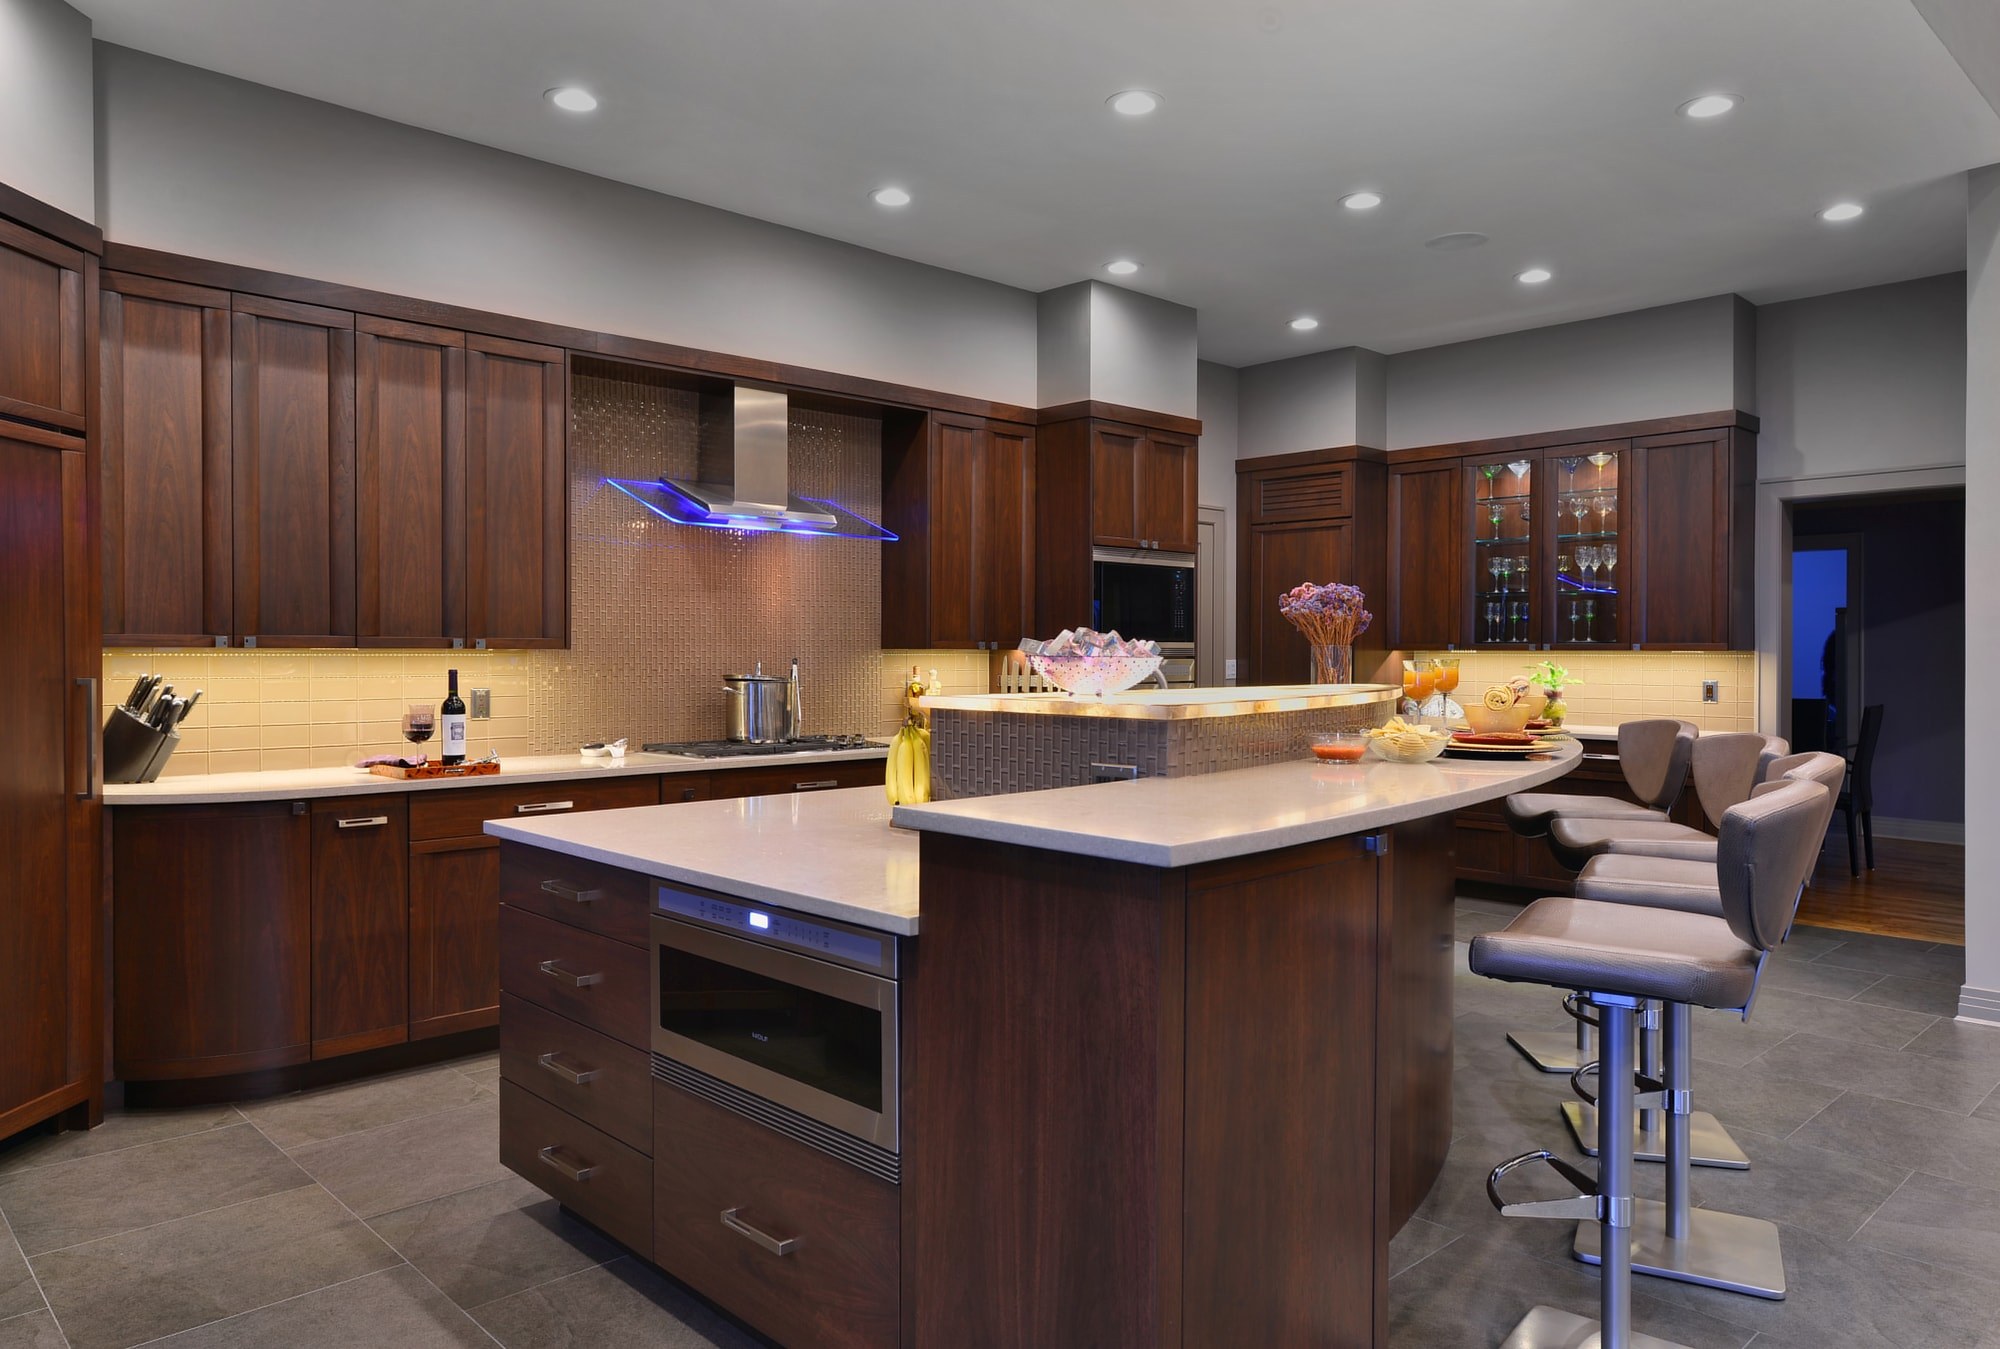 Transitional style kitchen with counter stools